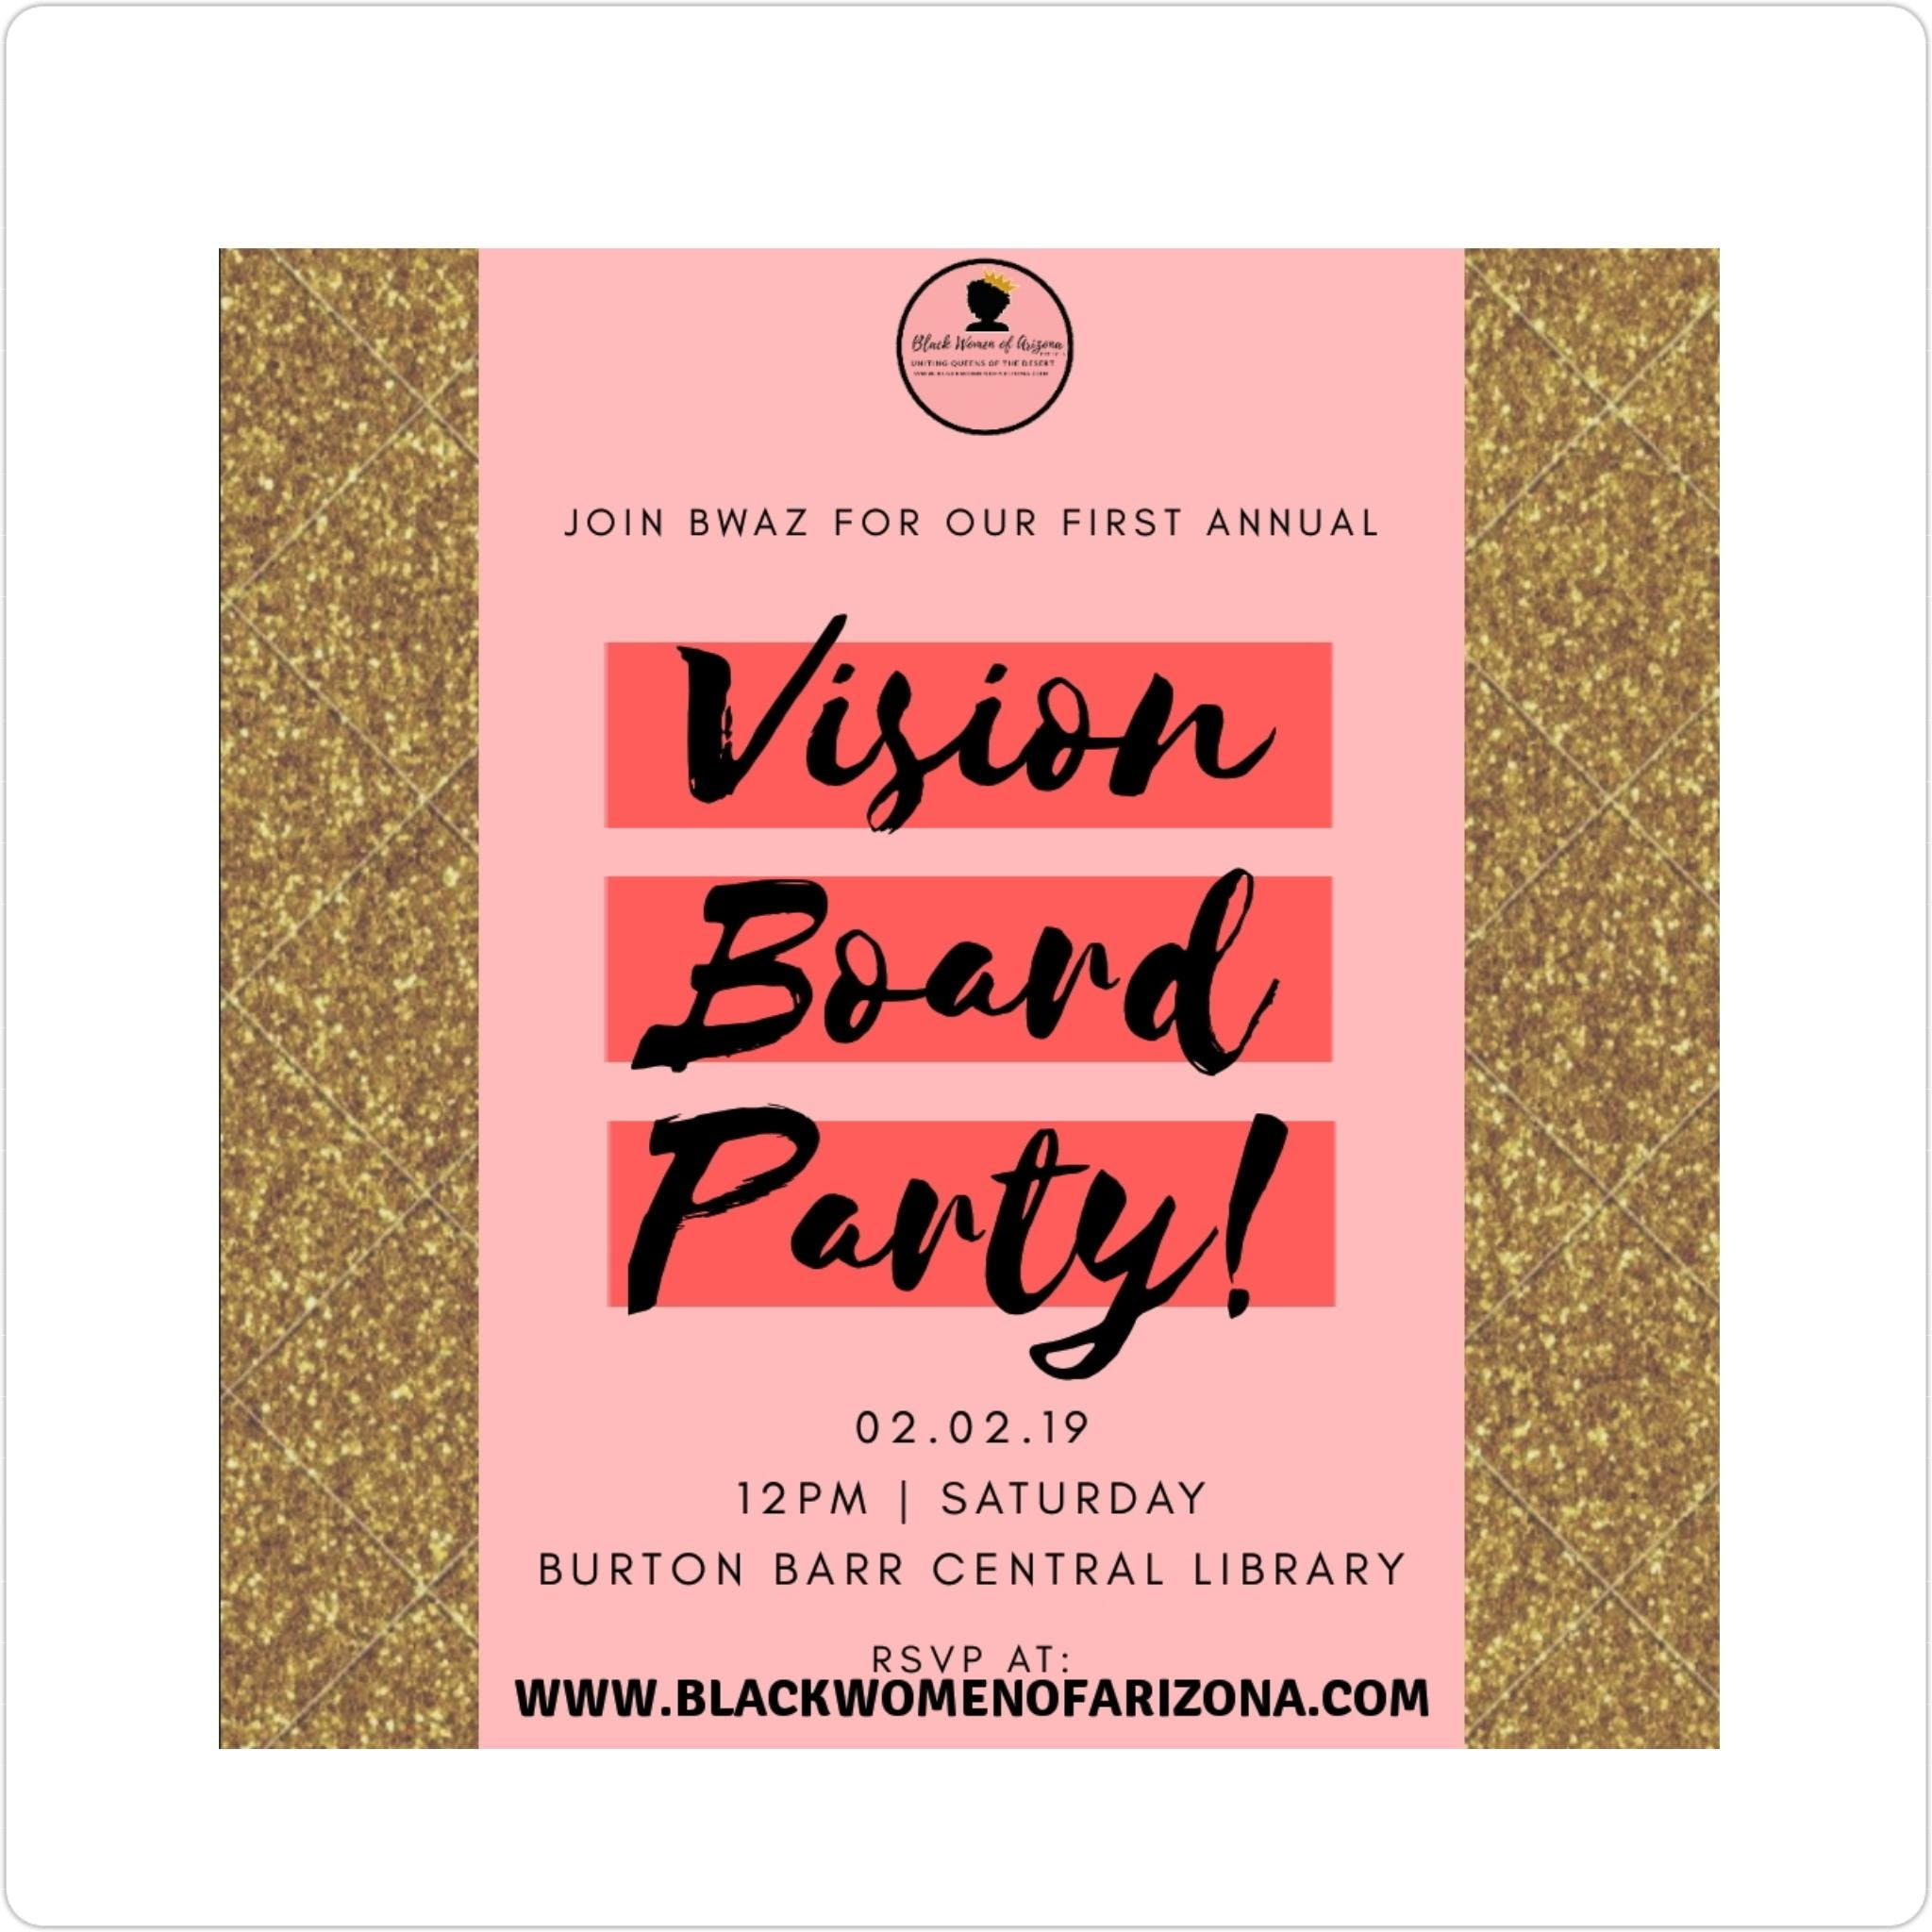 BWAZ 1st Annual Vision Board Party 2019